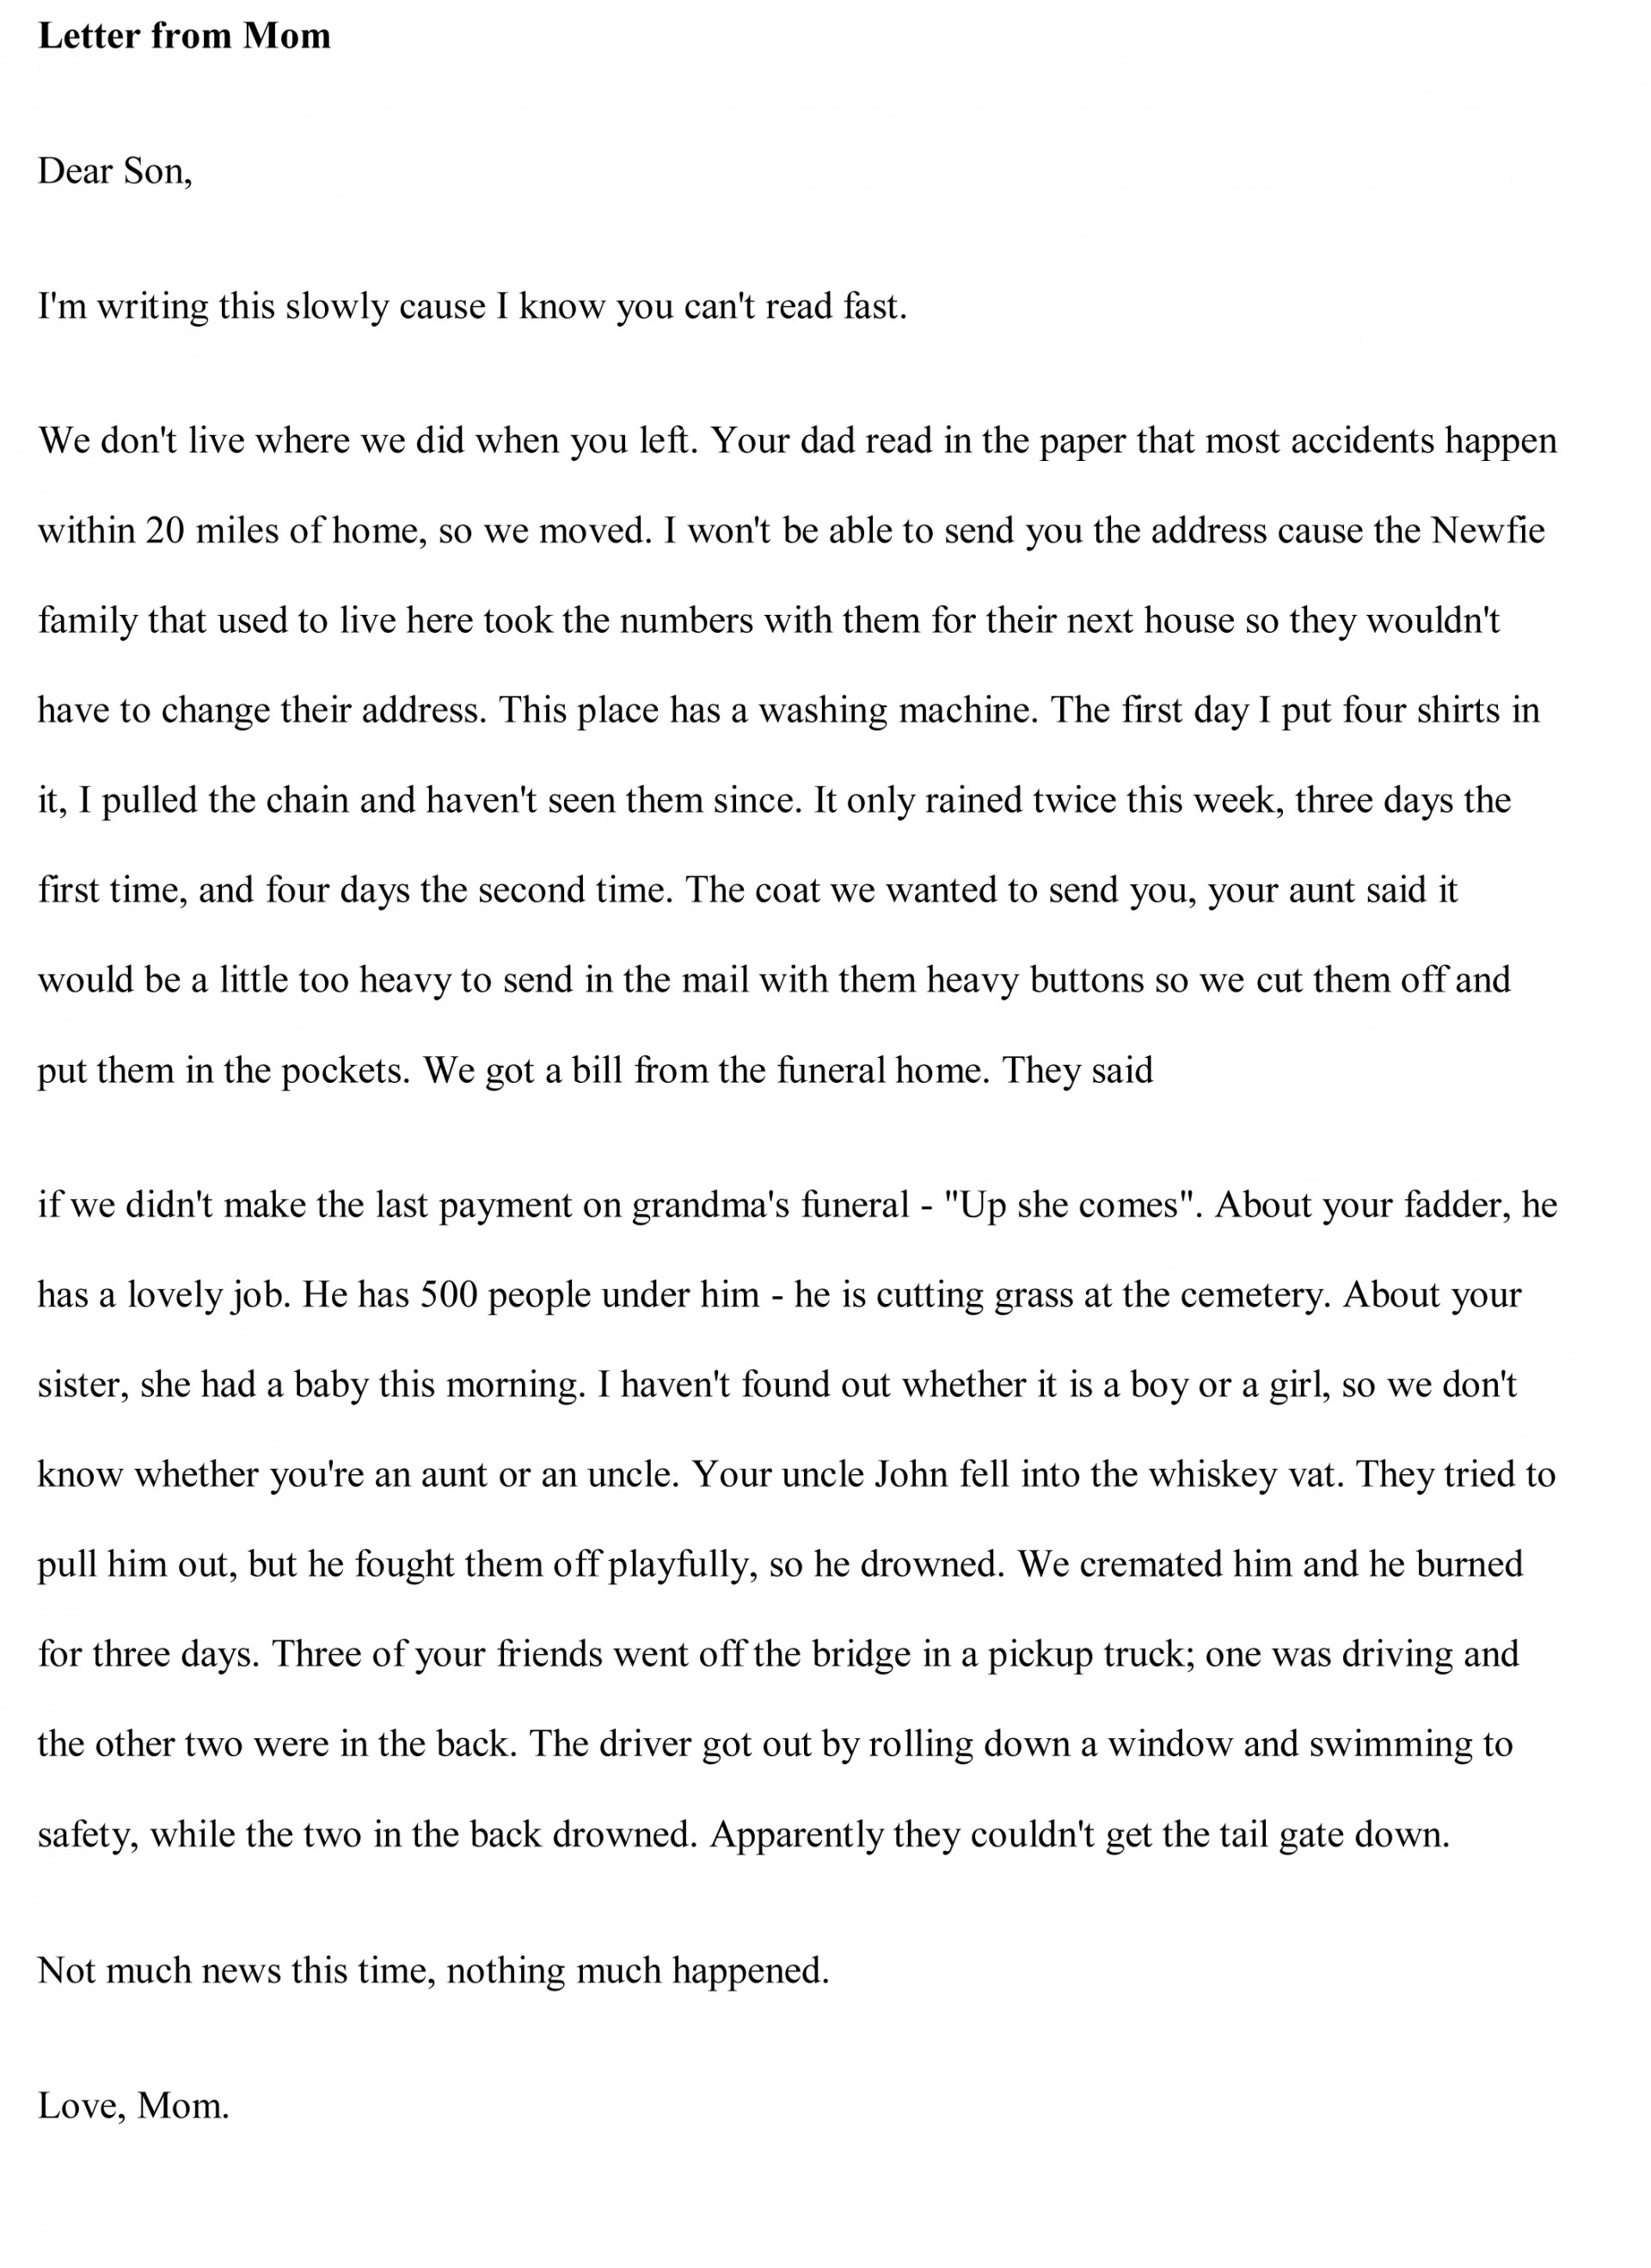 015 Interesting Essay Topics Example Funny Free Amazing Descriptive To Write About For Grade 8 In Urdu Synthesis 1920